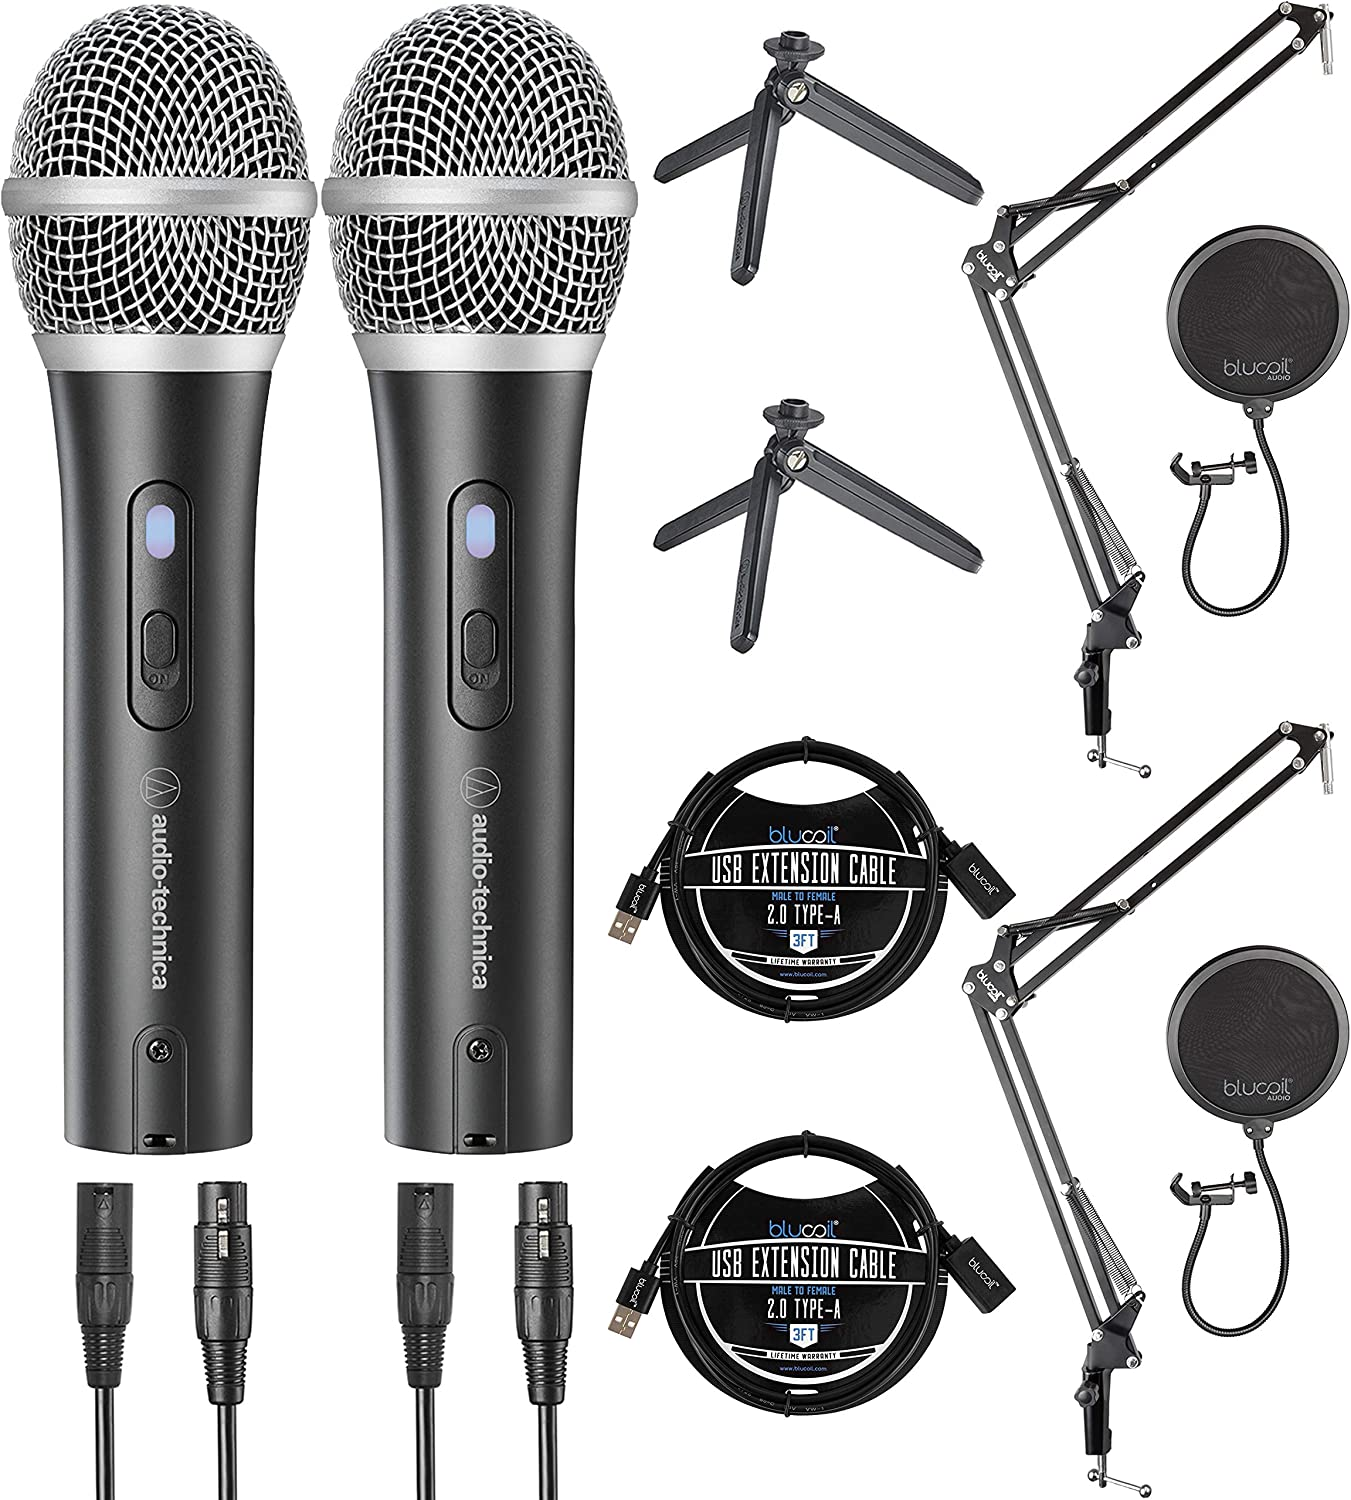 Audio-Technica ATR2100X-USB Dynamic Microphones for Home Studio Recording and 3 USB Extension Cables 2-Pack 2-Pack Boom Arm Plus Pop Filters Bundle with Blucoil USB Hub Type-A 2-Pack